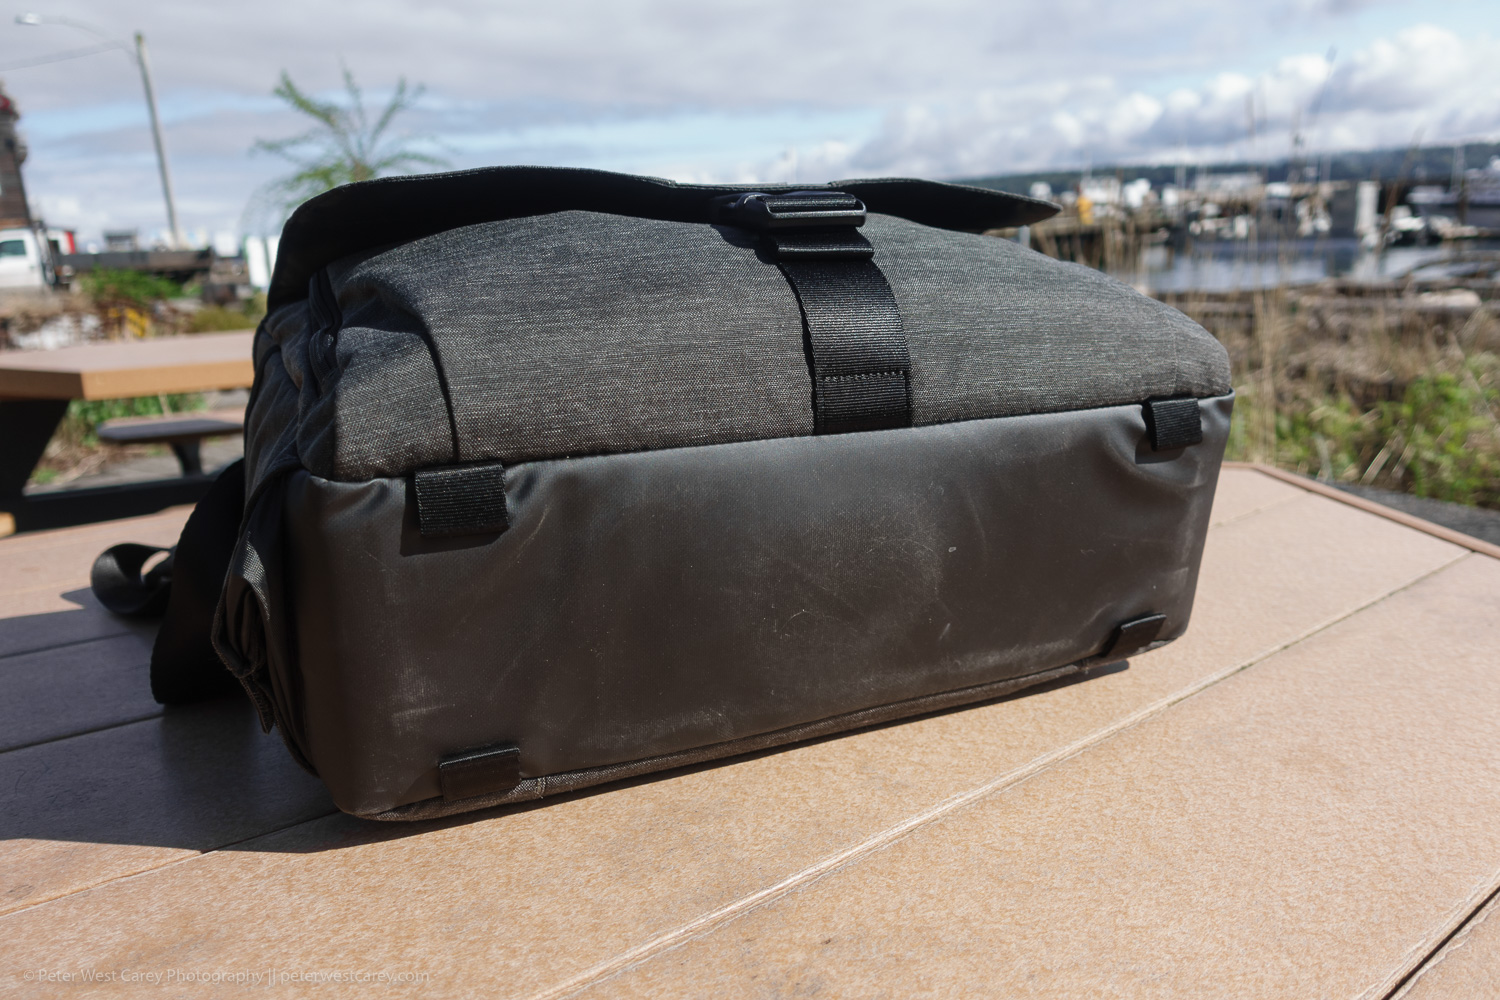 ThinkTank Vision 15 Camera Bag Review